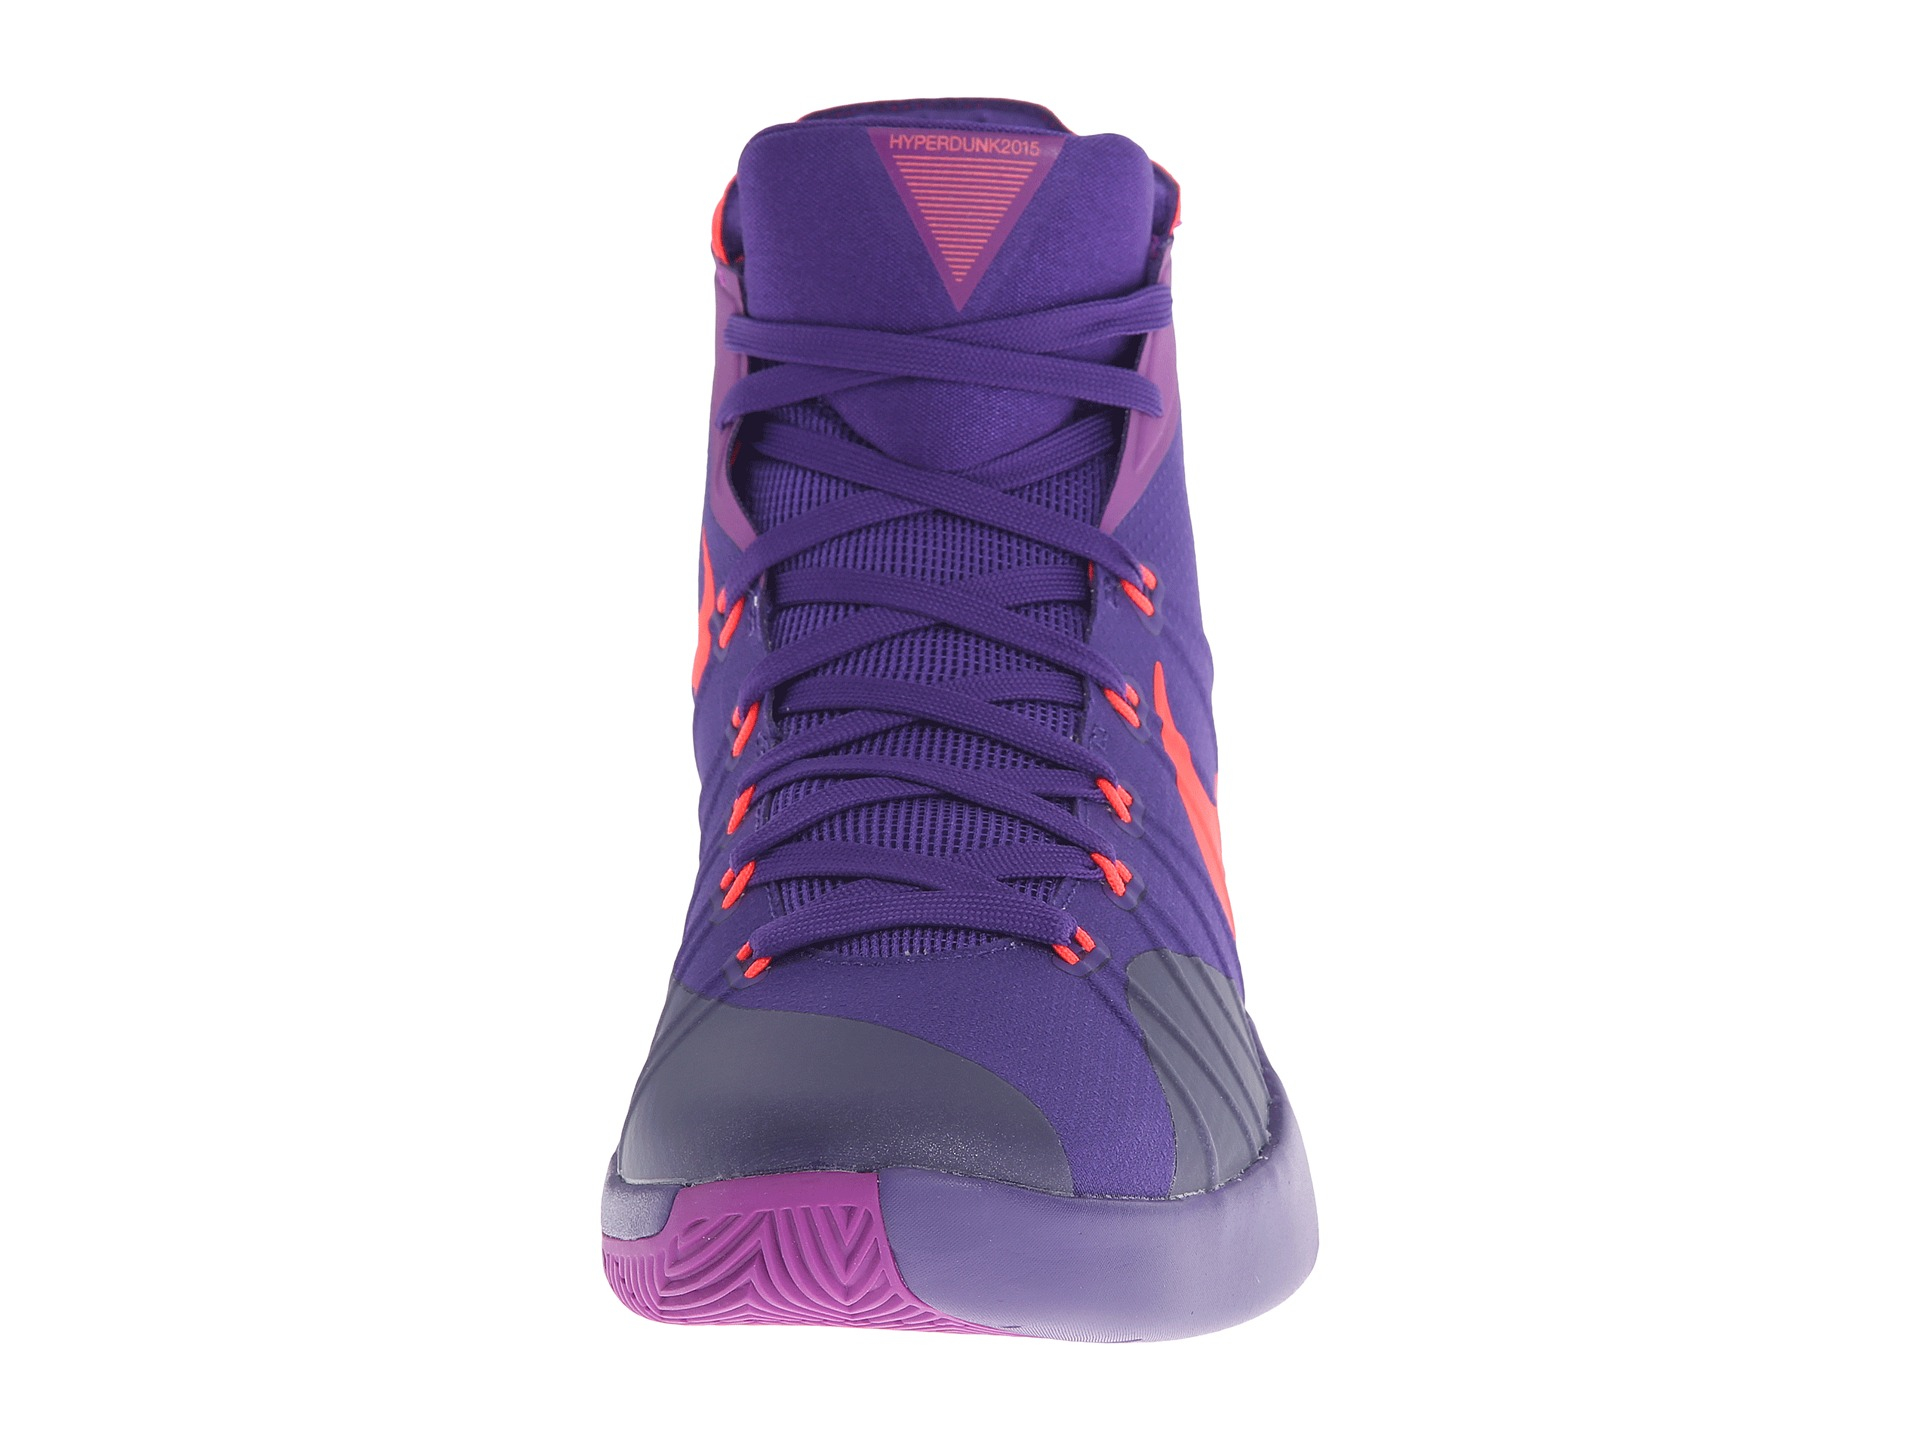 7942fab8ac6f Lyst - Nike Hyperdunk 2015 in Purple for Men